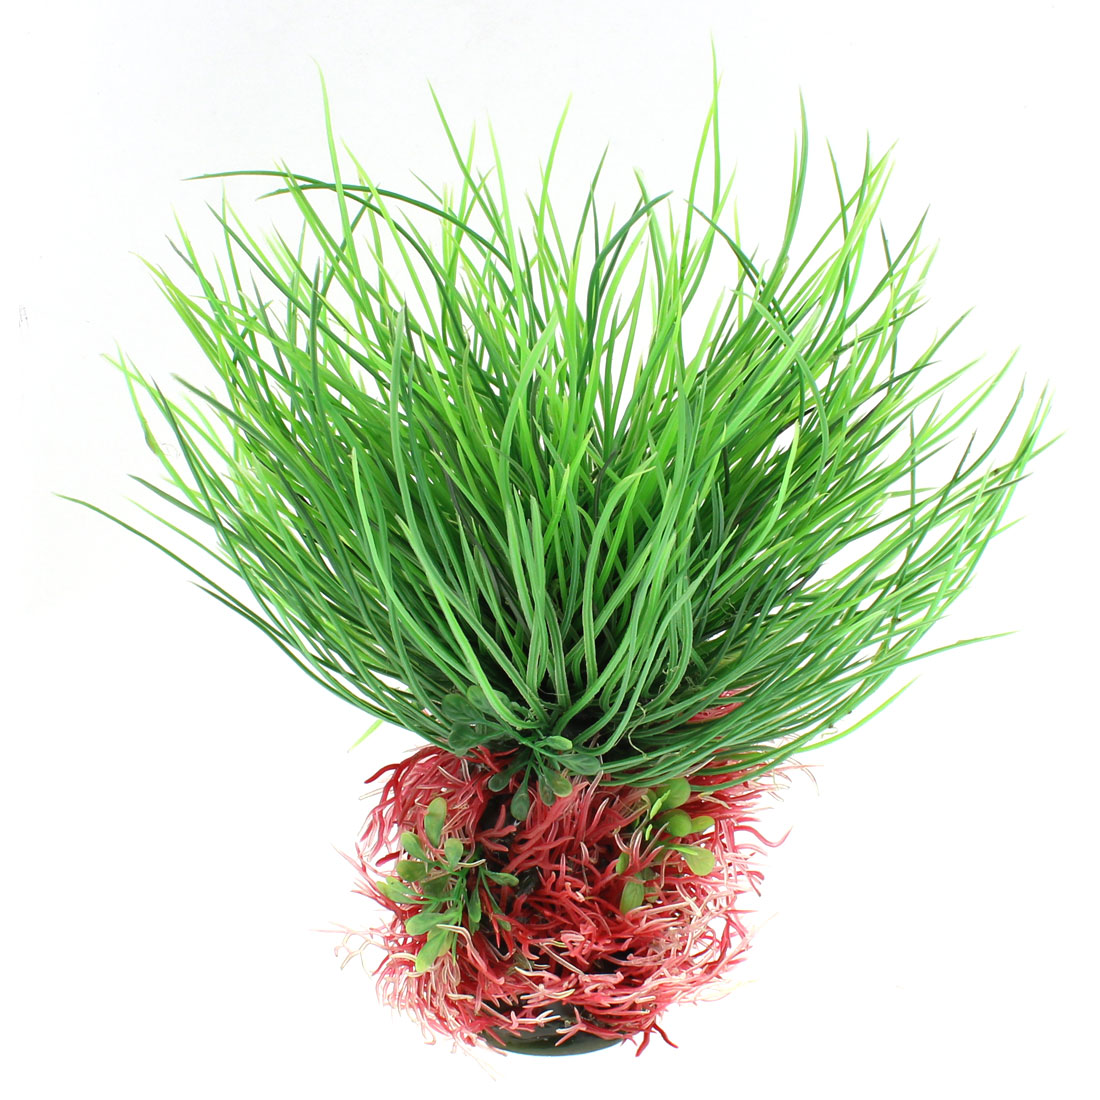 Aquarium Plastic Landscaping Grass Plant Decor 24cm Height